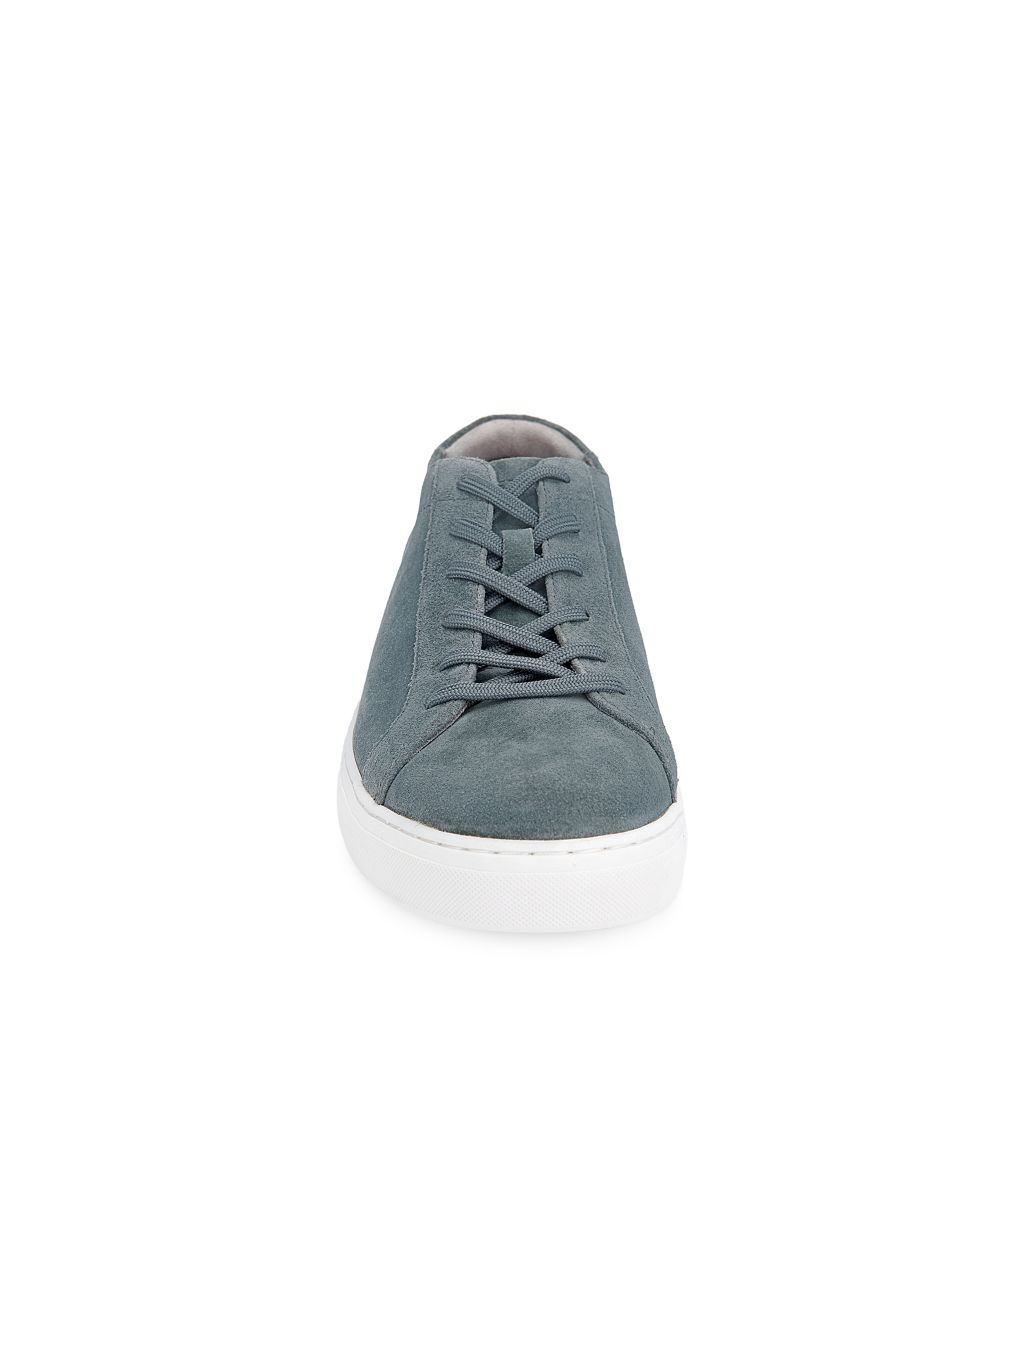 Kenneth Cole Kam 2.0 Suede Sneakers